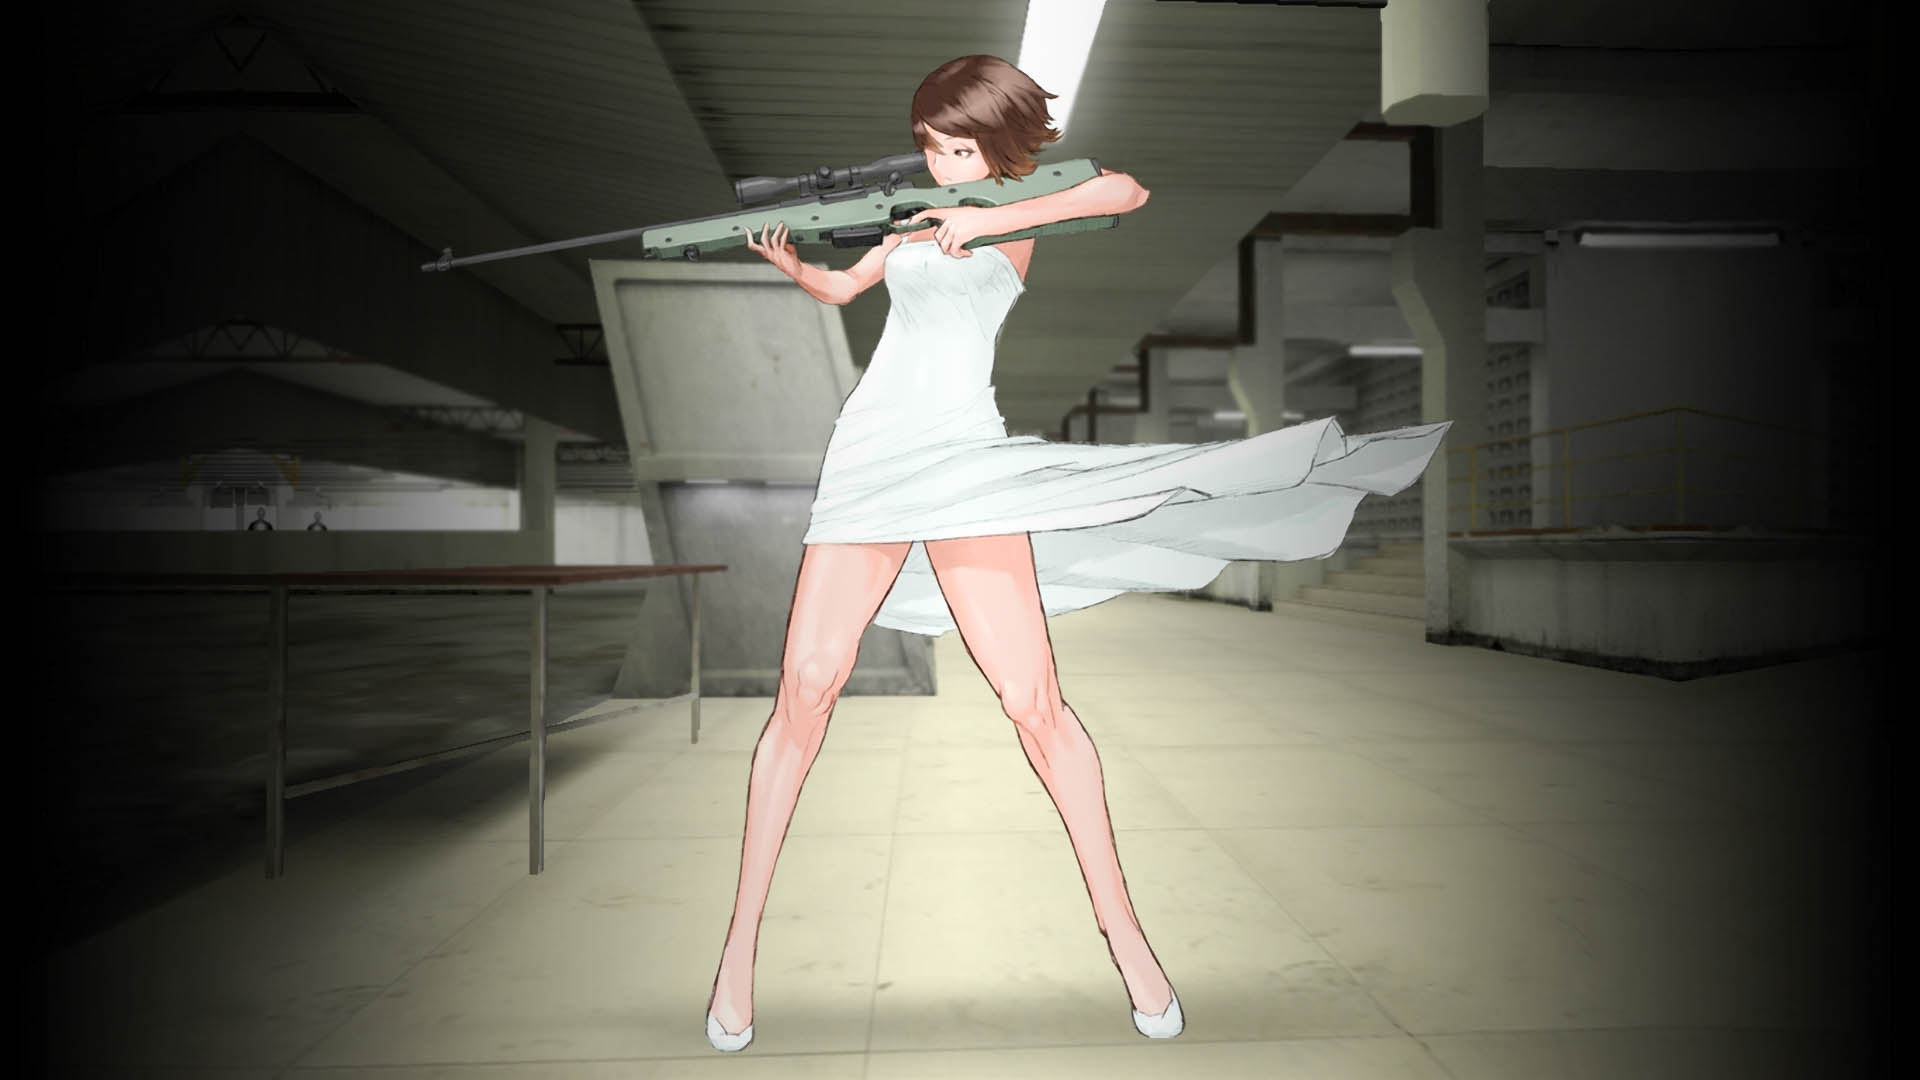 Girl With Guns Hd Wallpapers Counter Strike High Resolution Hd Wallpapers All Hd